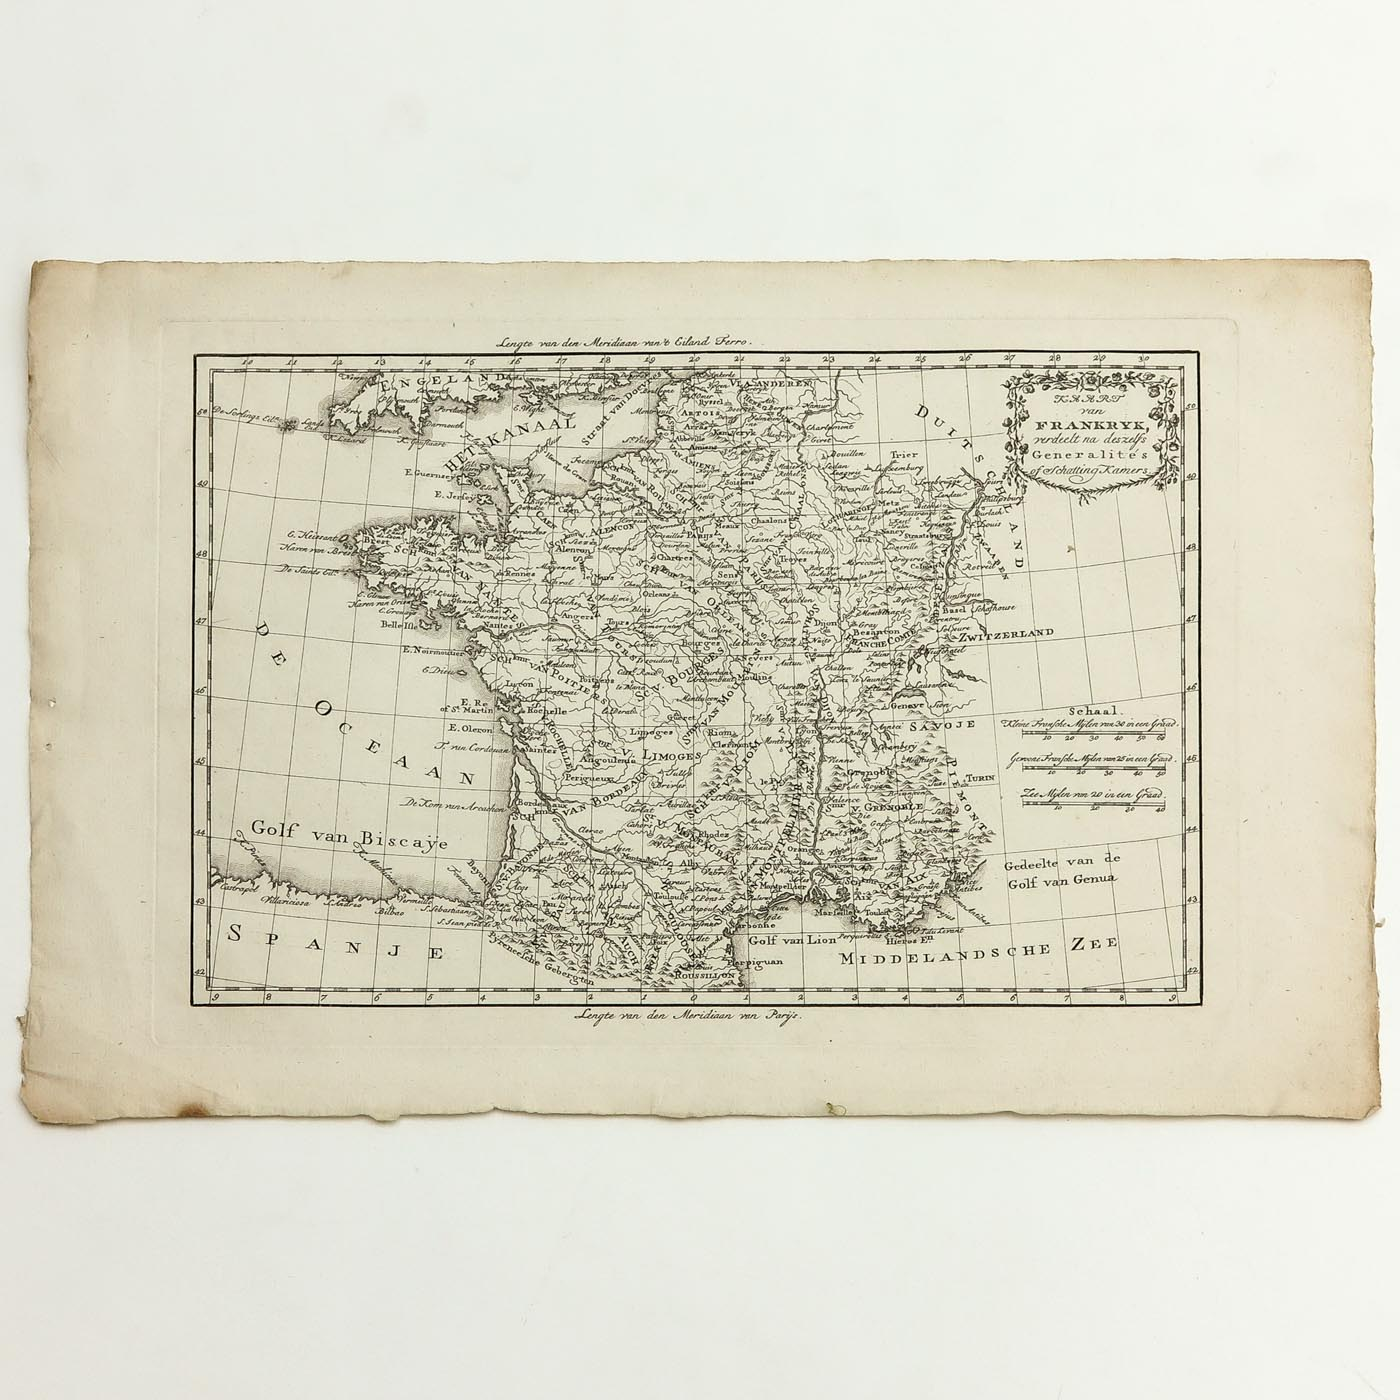 A Collection of Old Prints and Topographic Maps - Image 4 of 5